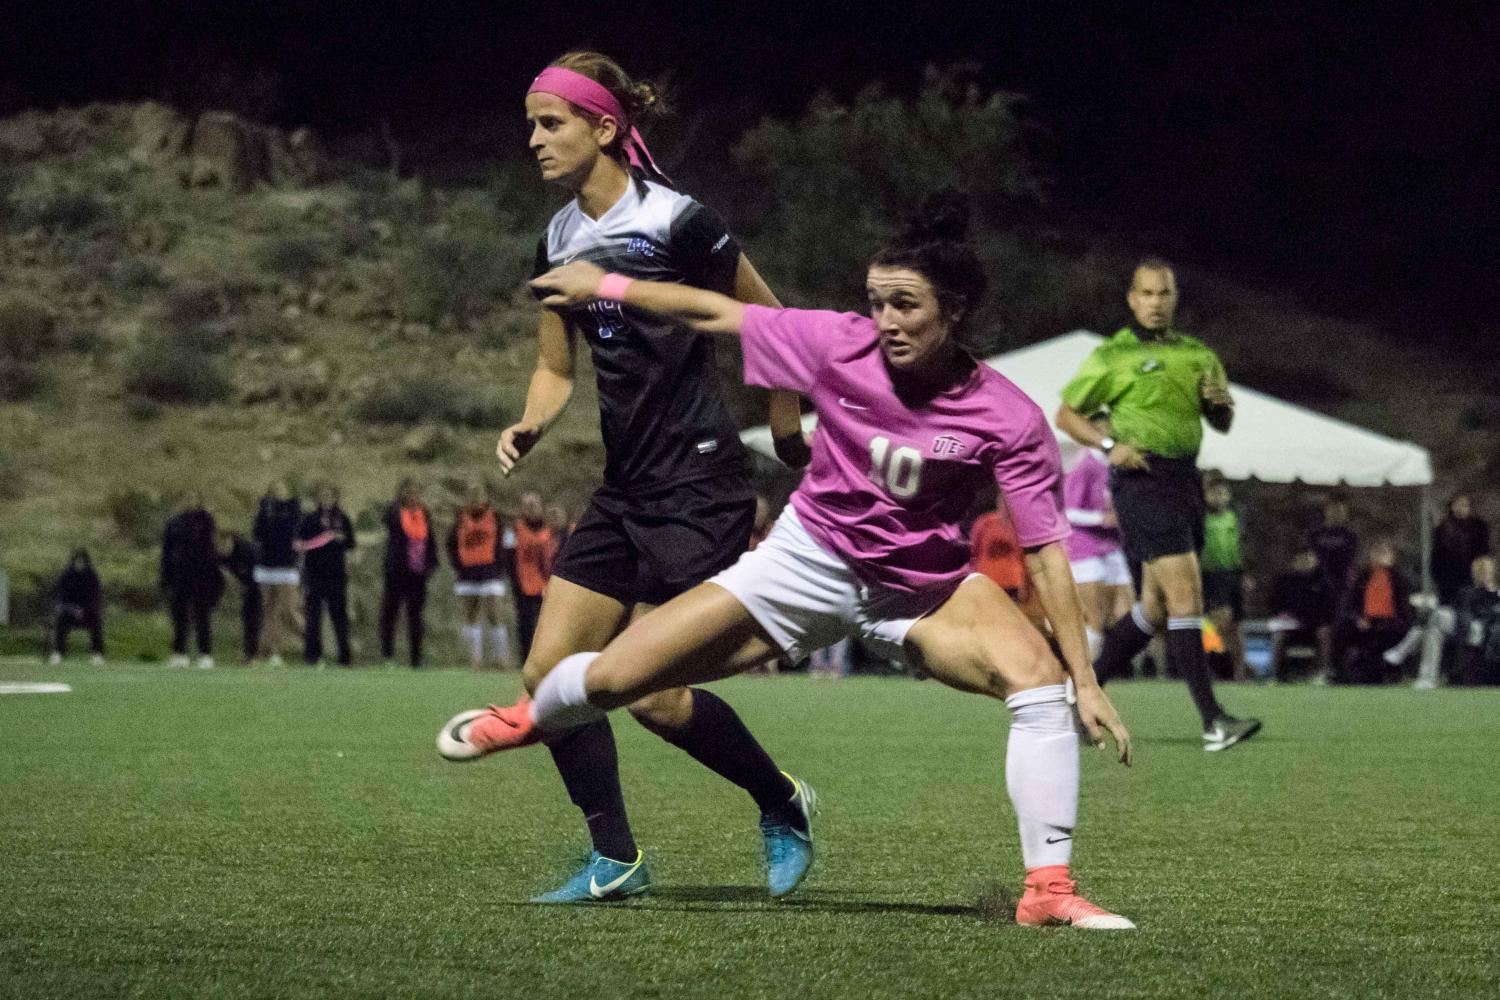 UTEP women's soccer player Vic Bohdan lunges forward after stealing away the ball from Middle Tennessee.